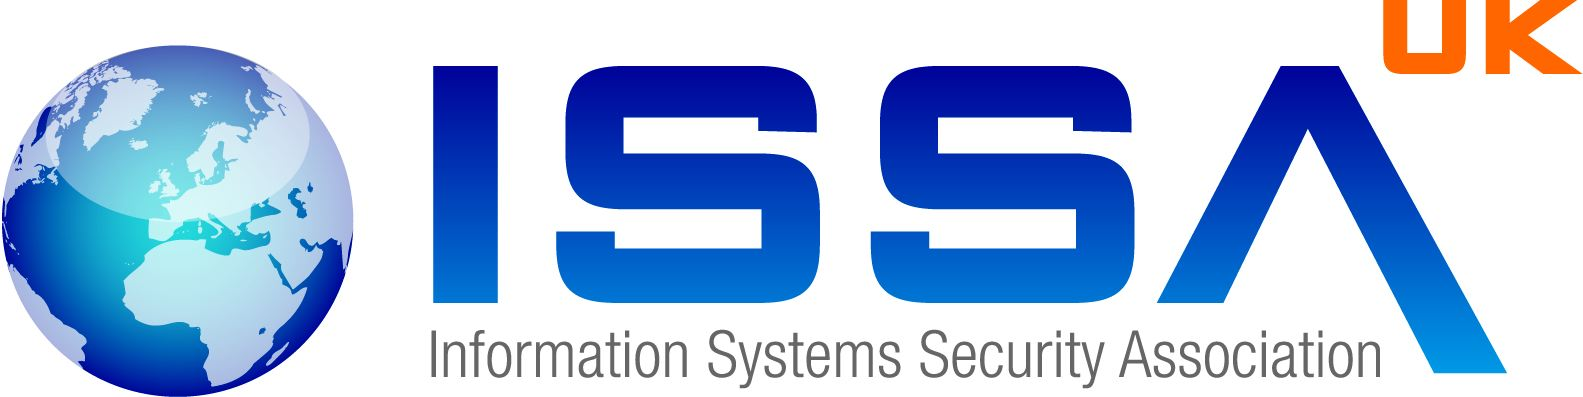 Information Systems Security Association